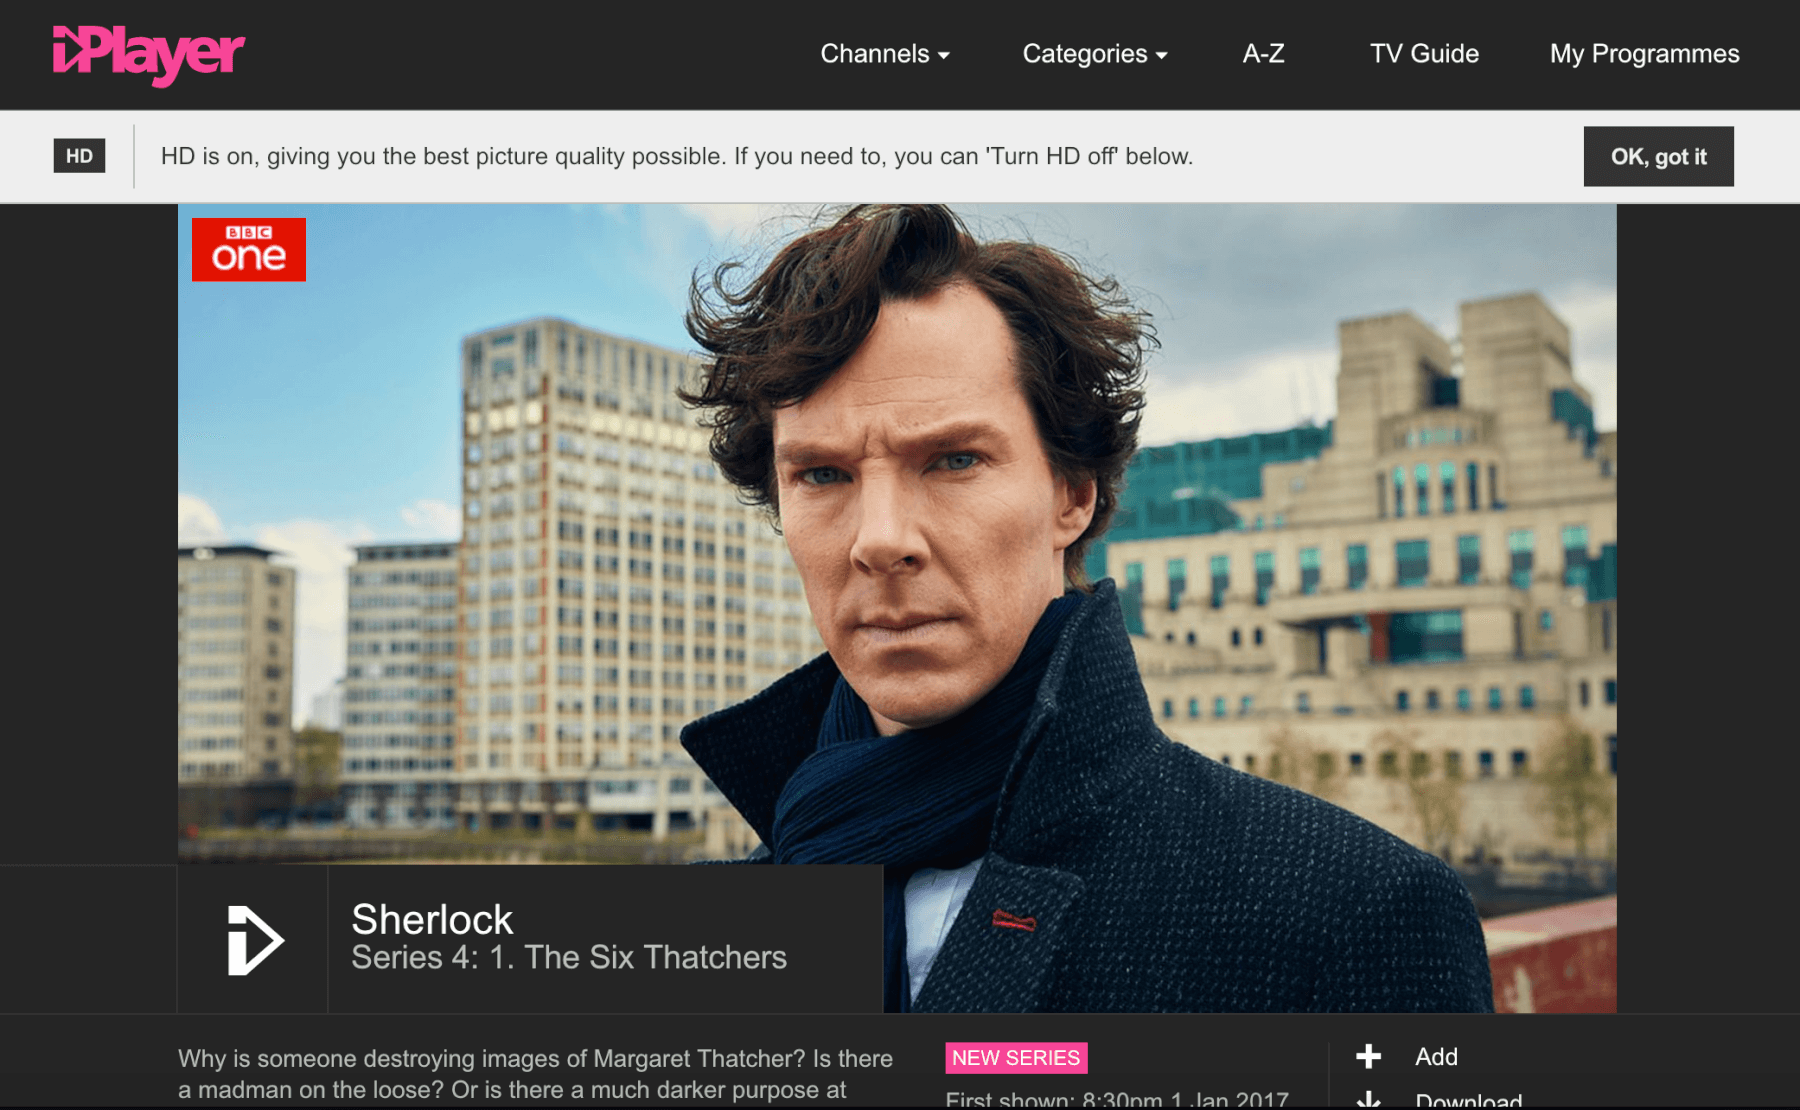 sherlock season 4 episodes download free